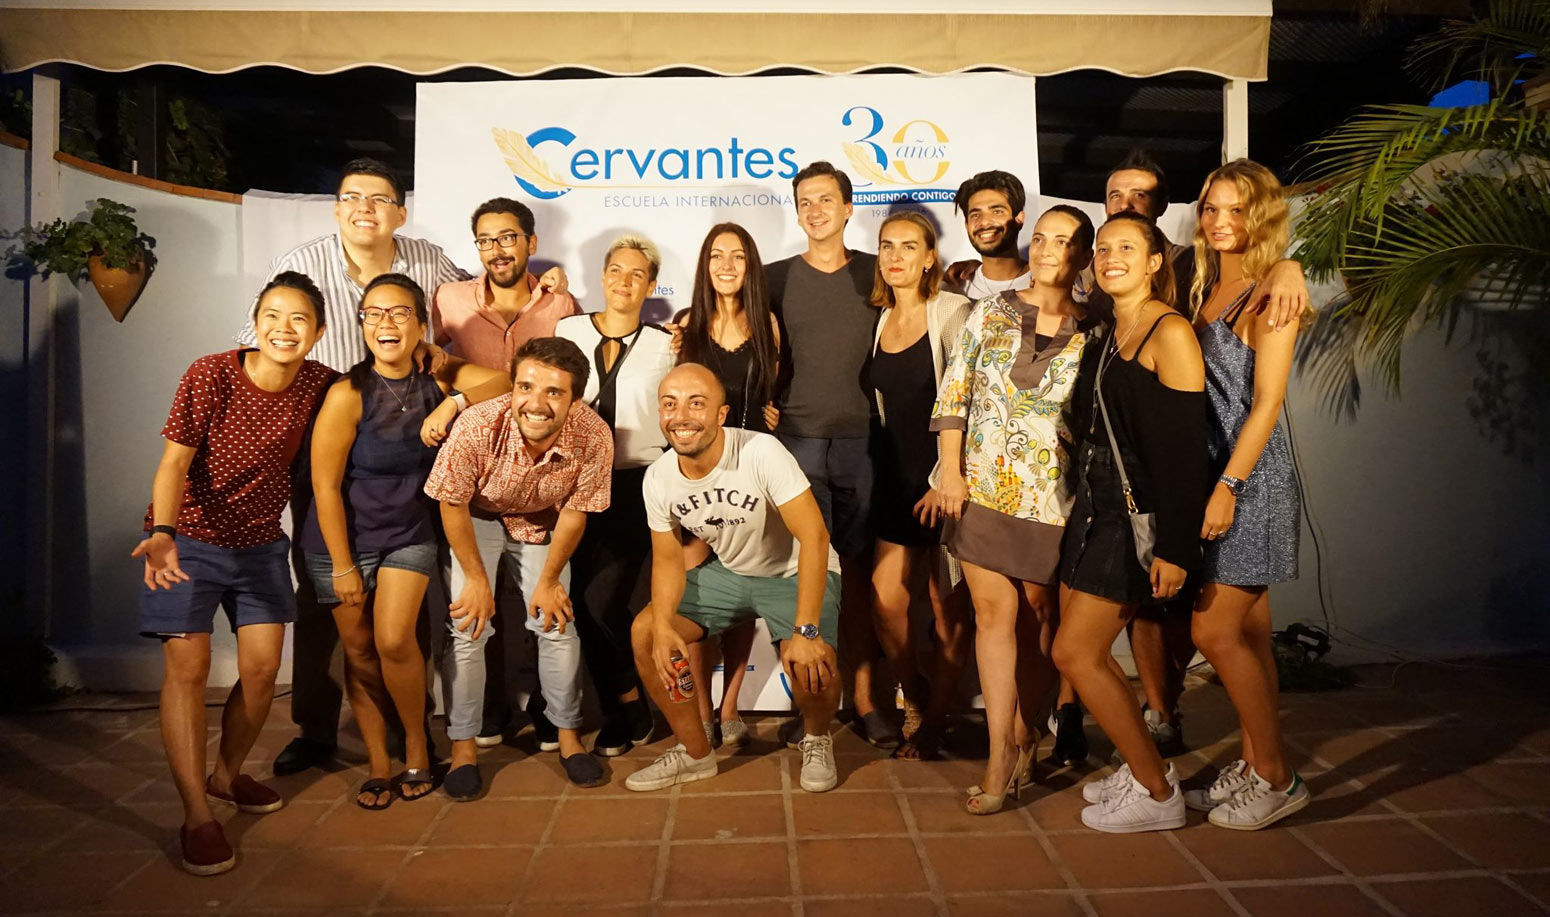 Meet the Cervantes team